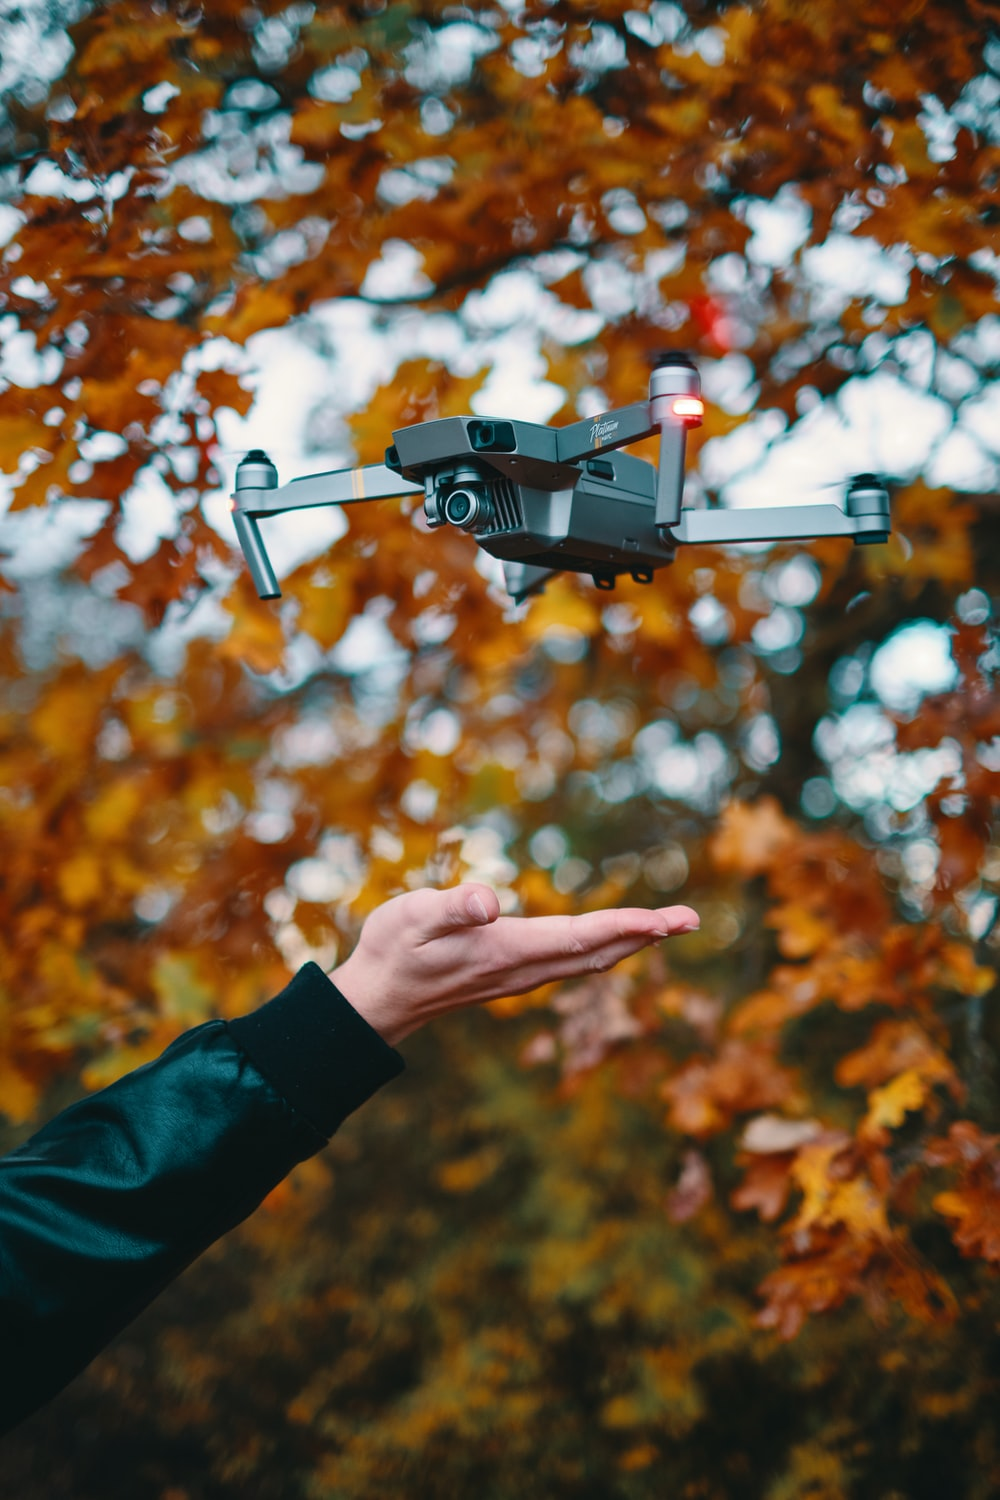 selective focus photography of black drone quadcopter